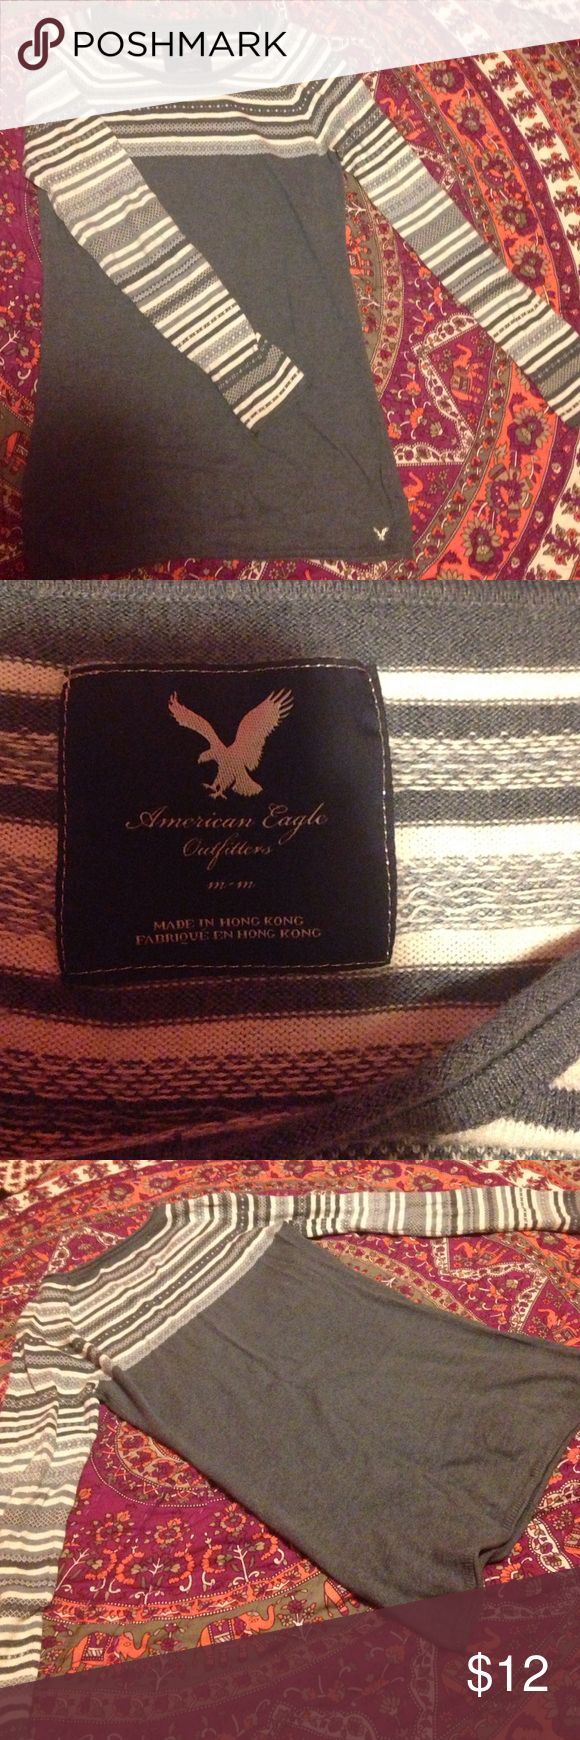 American Eagle Sweater This navy-blue and white sweater is in great condition and perfect for chilly weather. It has some slight pilling but nothing too drastic. American Eagle Outfitters Sweaters Crew & Scoop Necks